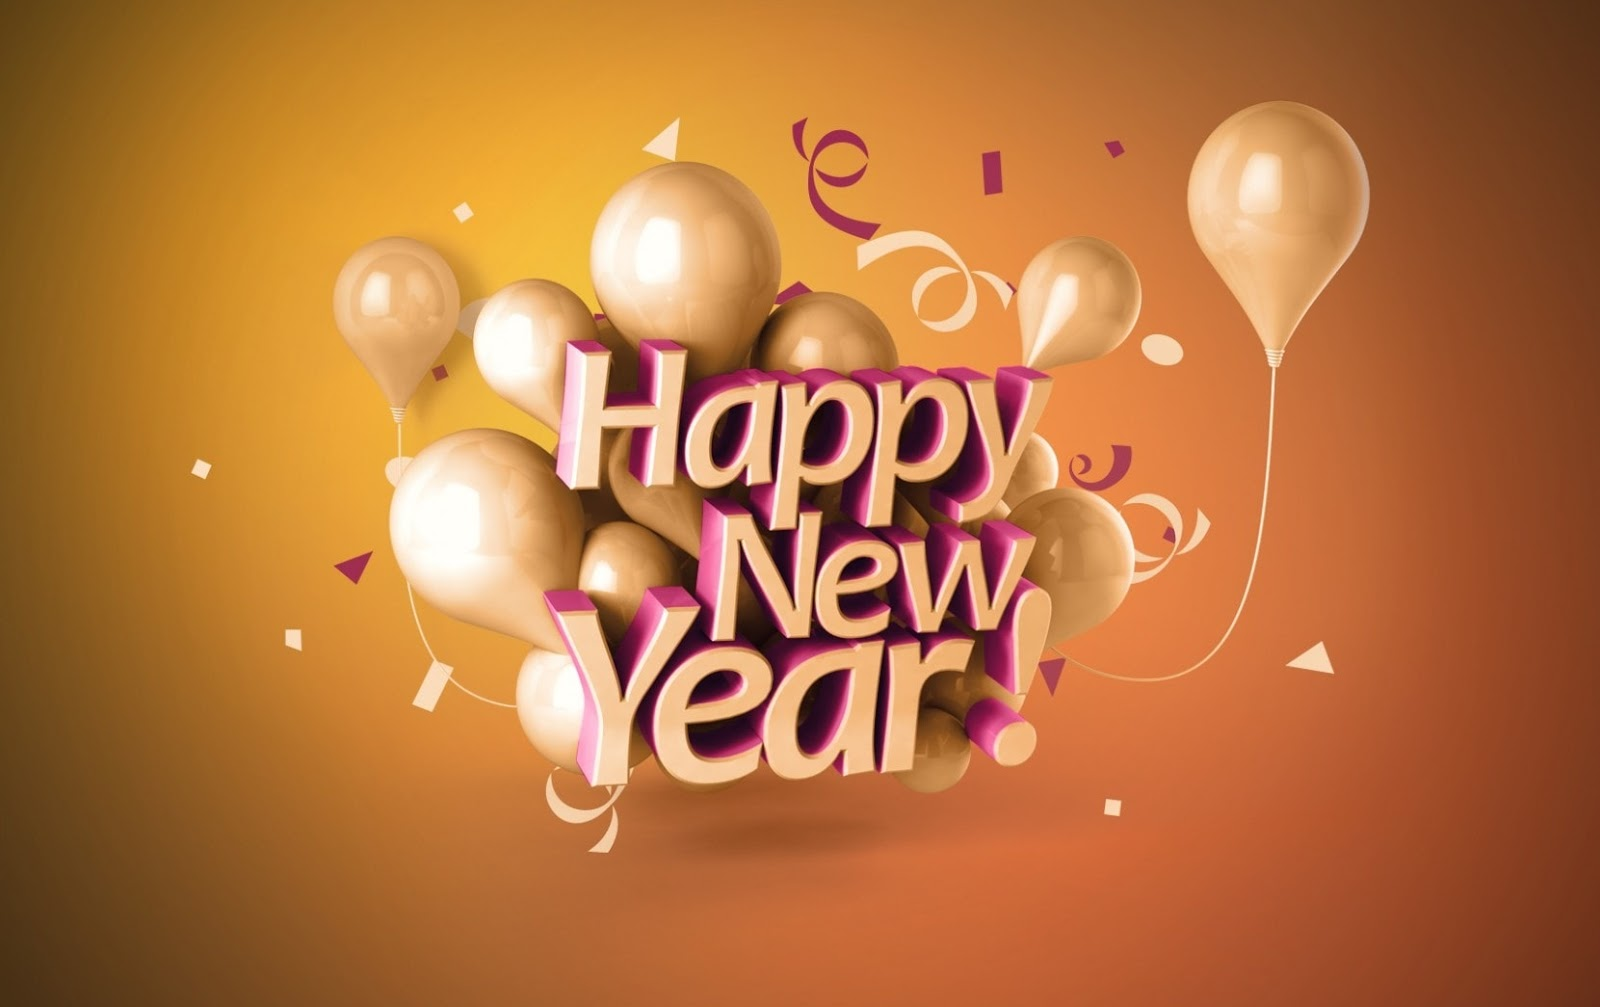 Happy New Year 2018 Images, Best Wishes